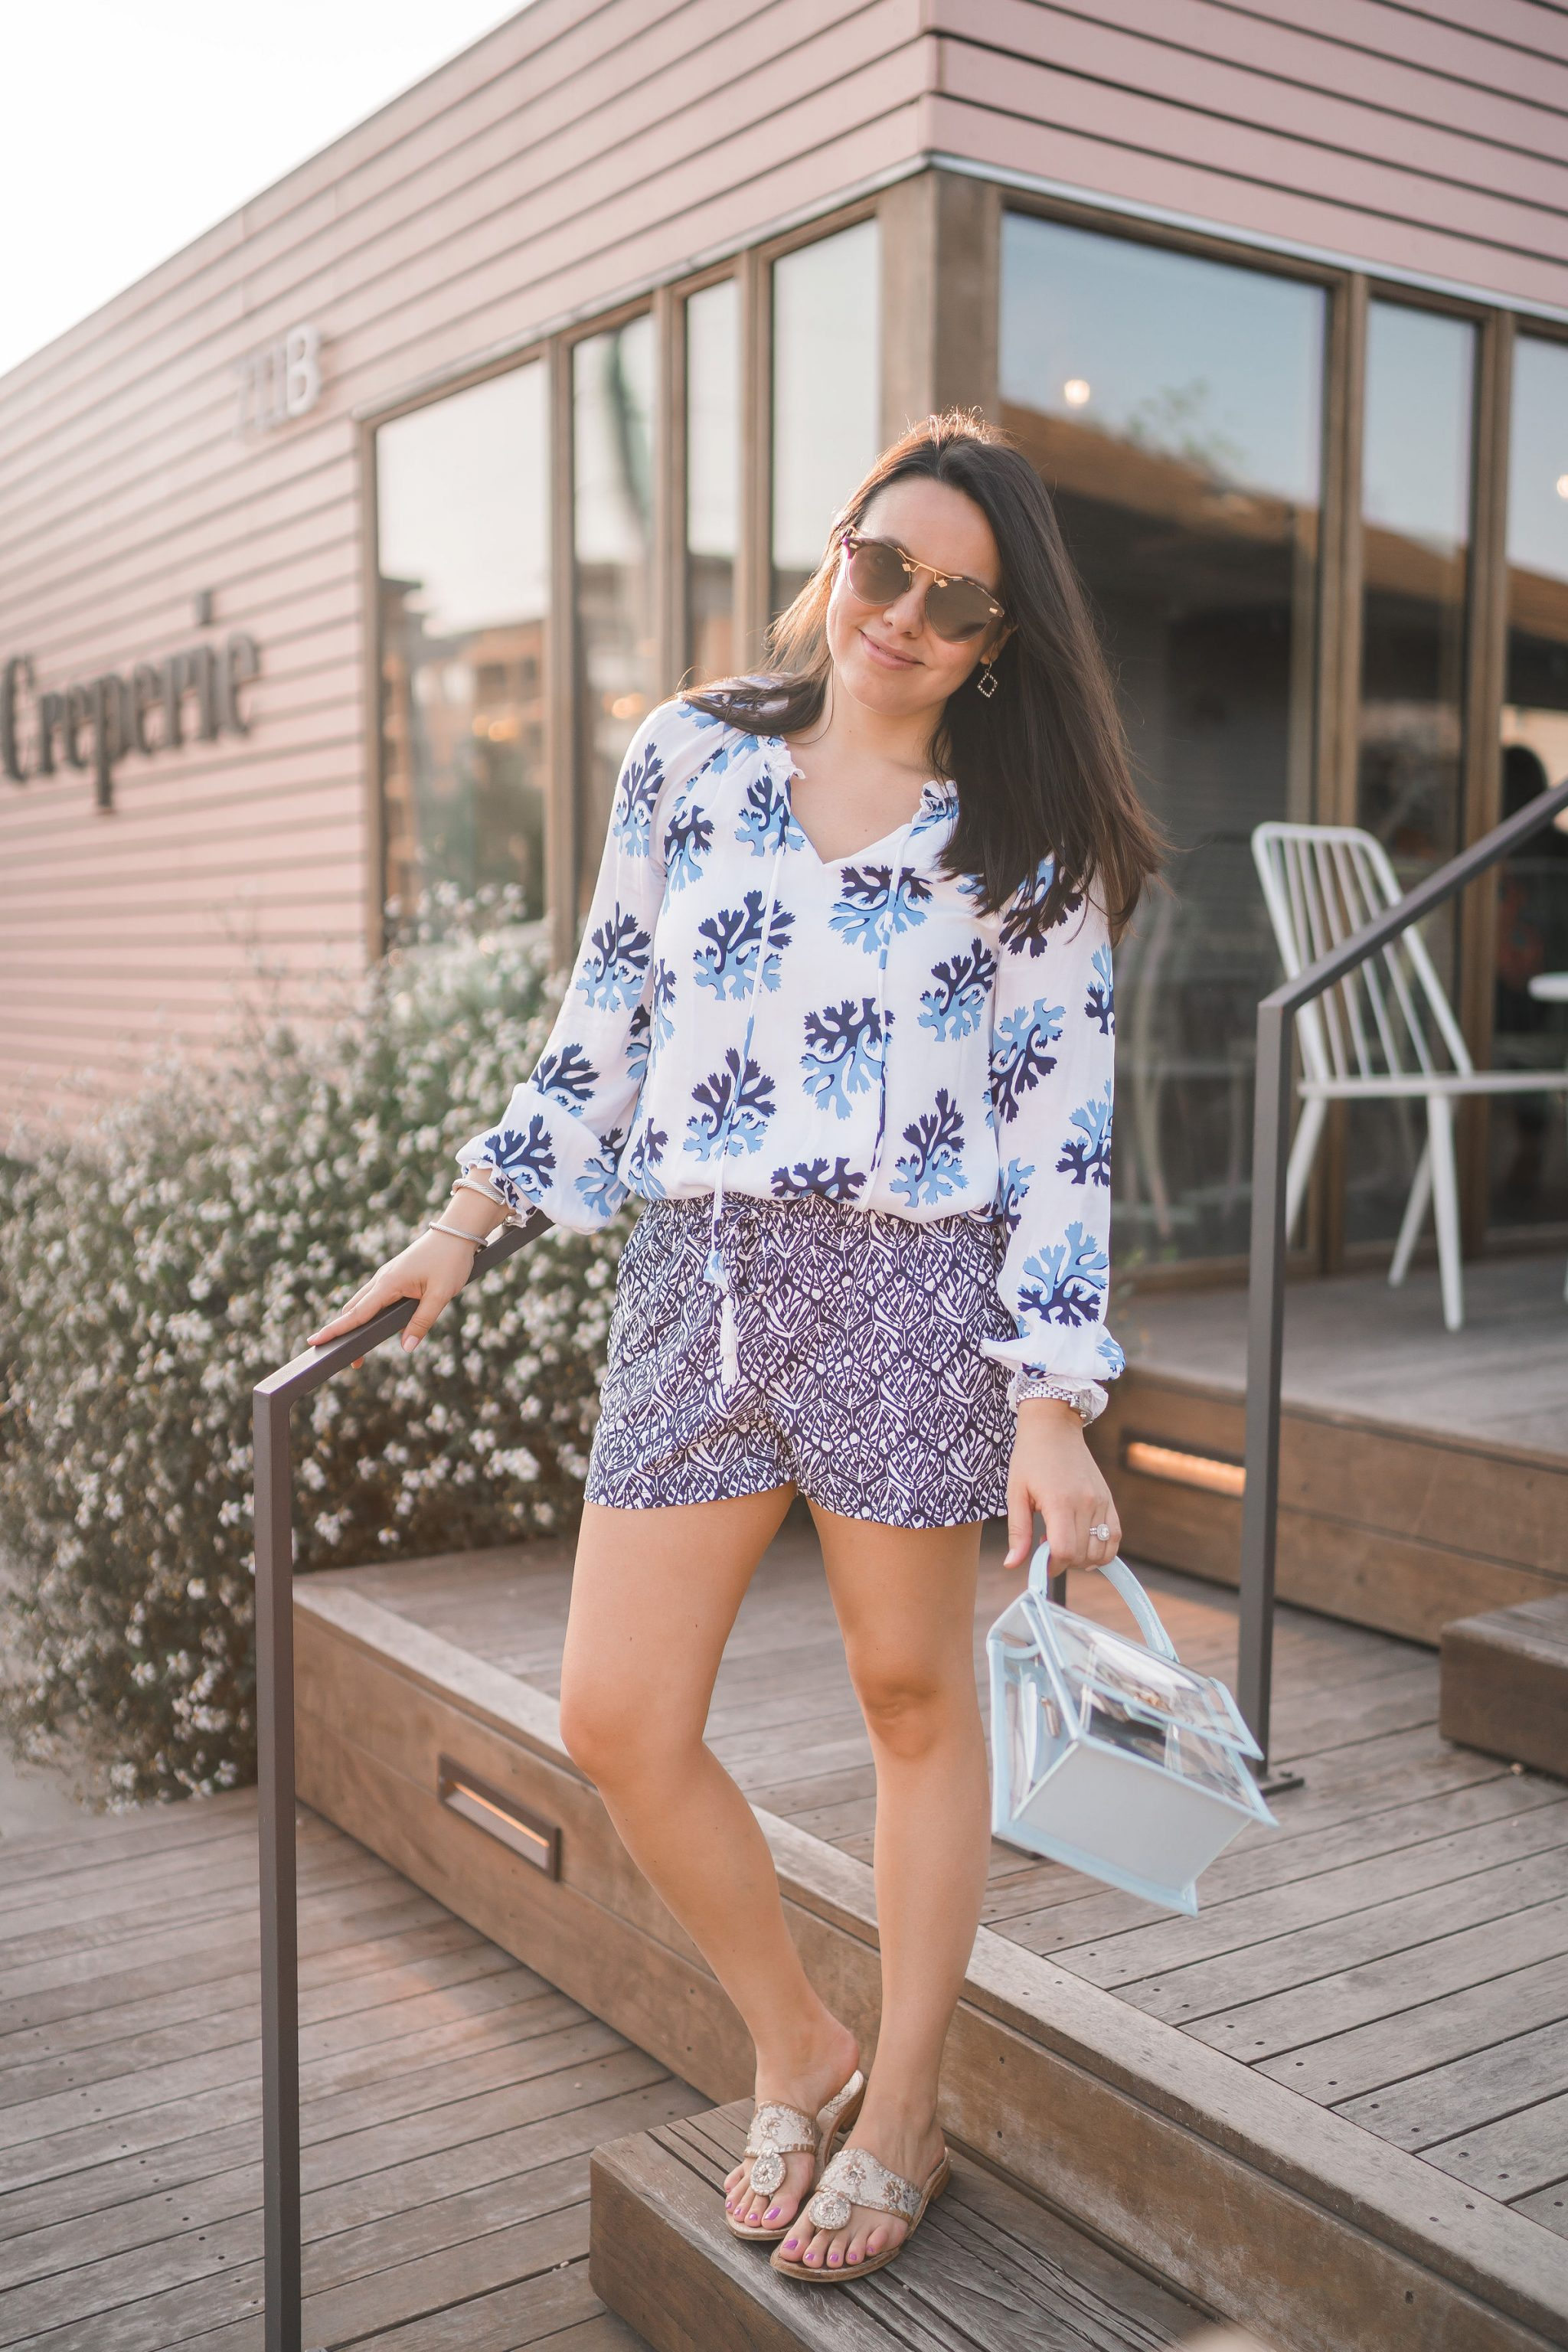 how to effortlessly mix outfit patterns, Persifor tunic top